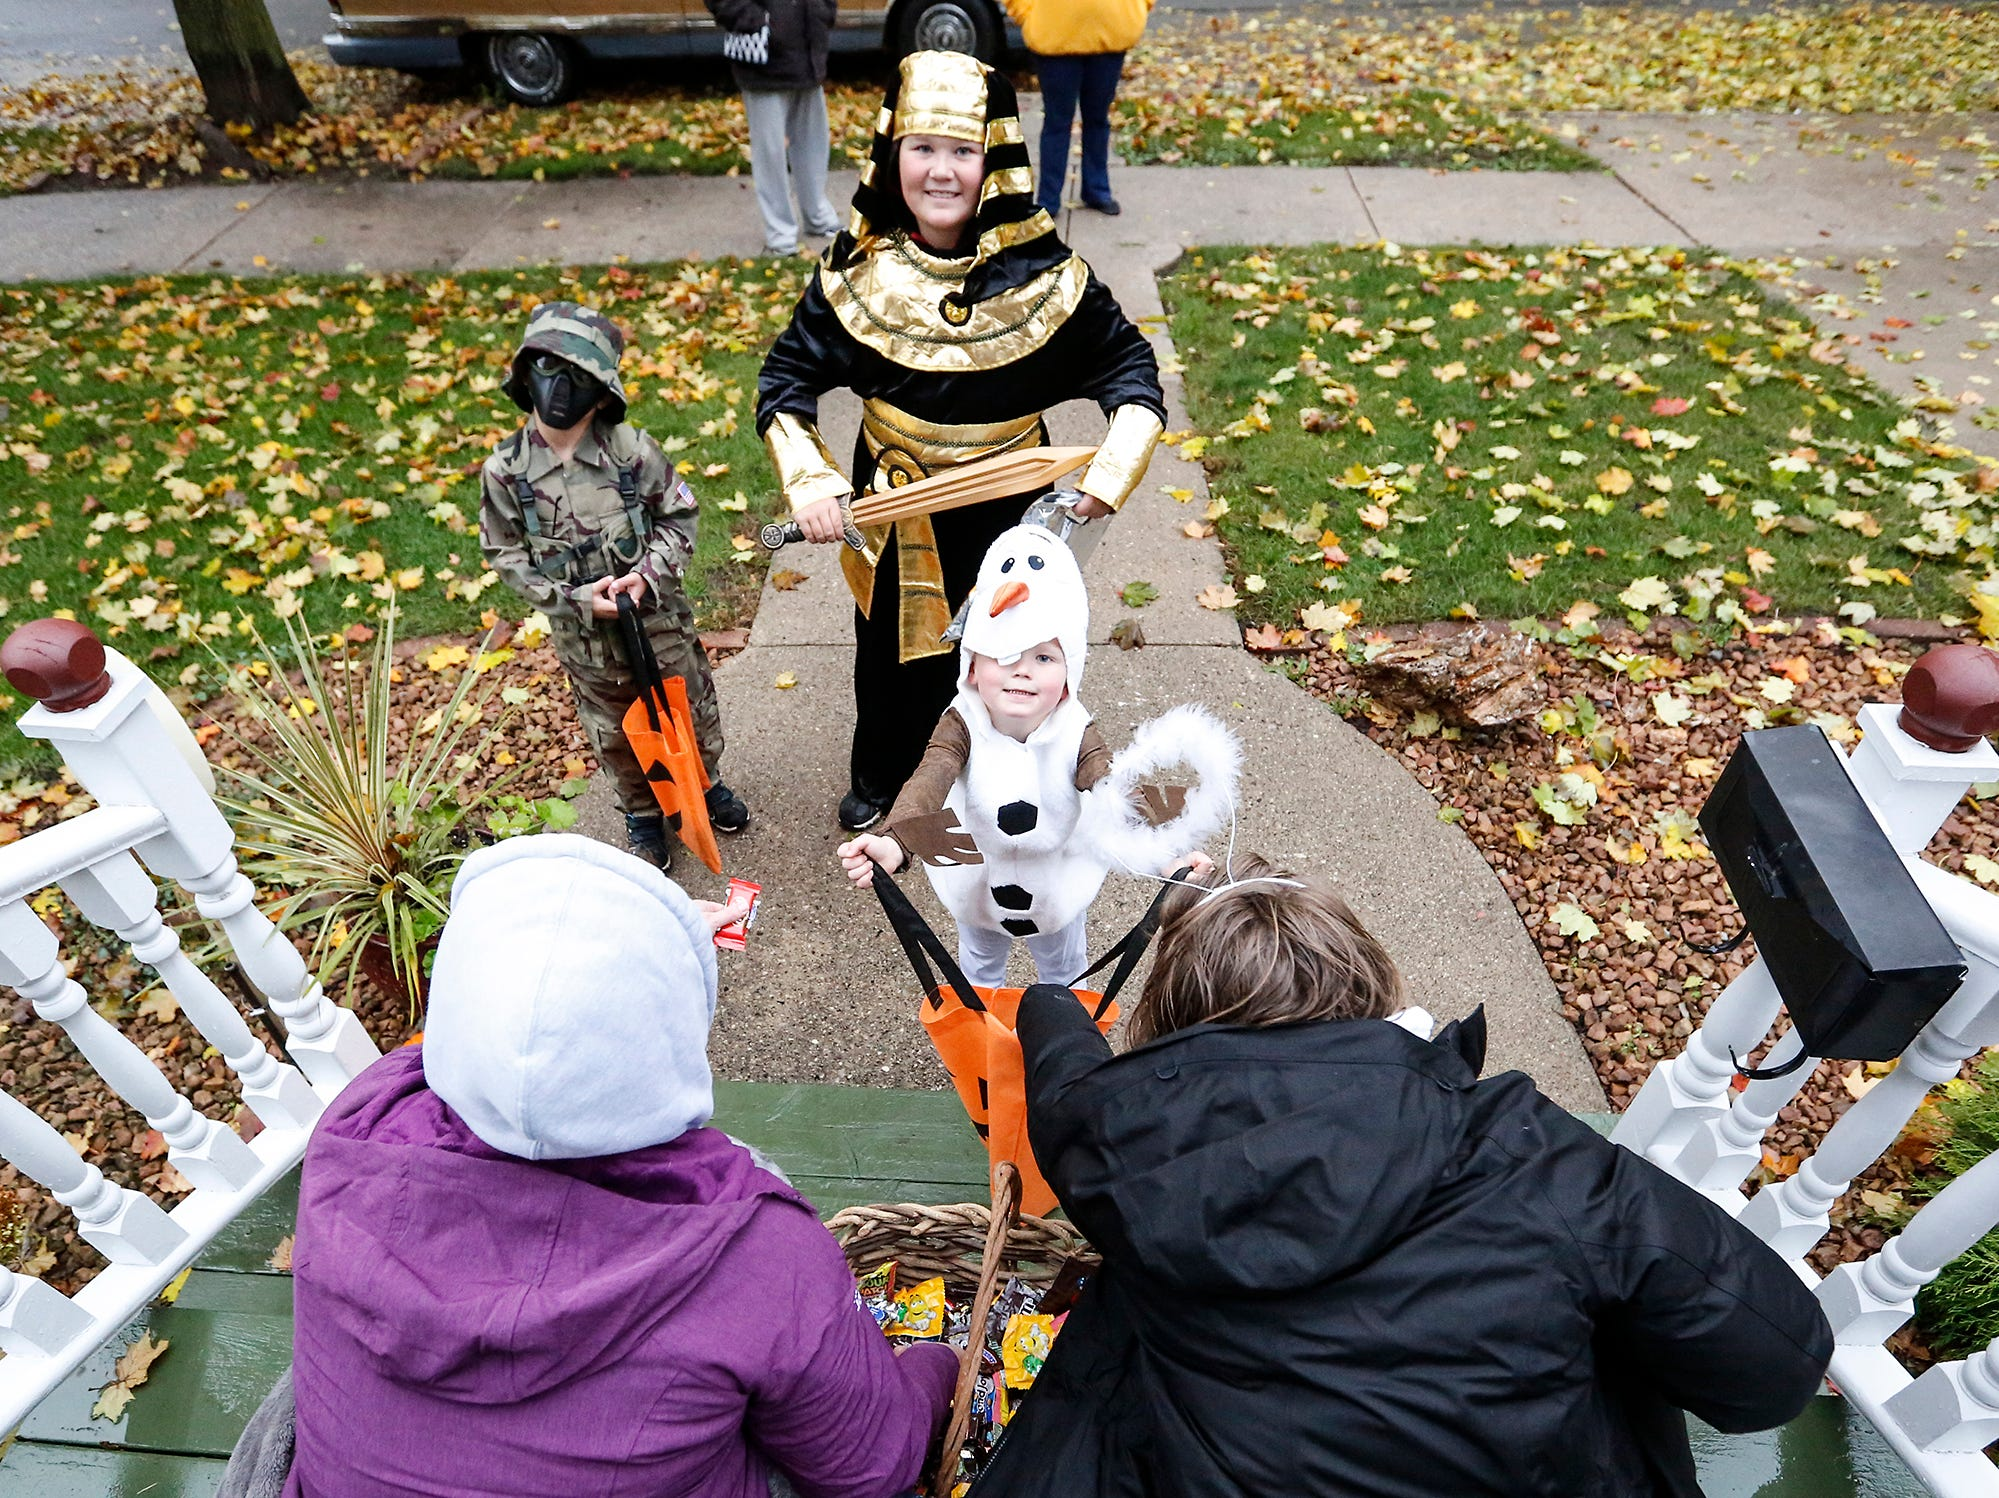 Zander Rushing, Thaddeus Becker and Jase Rushing were out trick or treating Sunday, October 28, 2018 in Fond du Lac, Wisconsin. Doug Raflik/USA TODAY NETWORK-Wisconsin